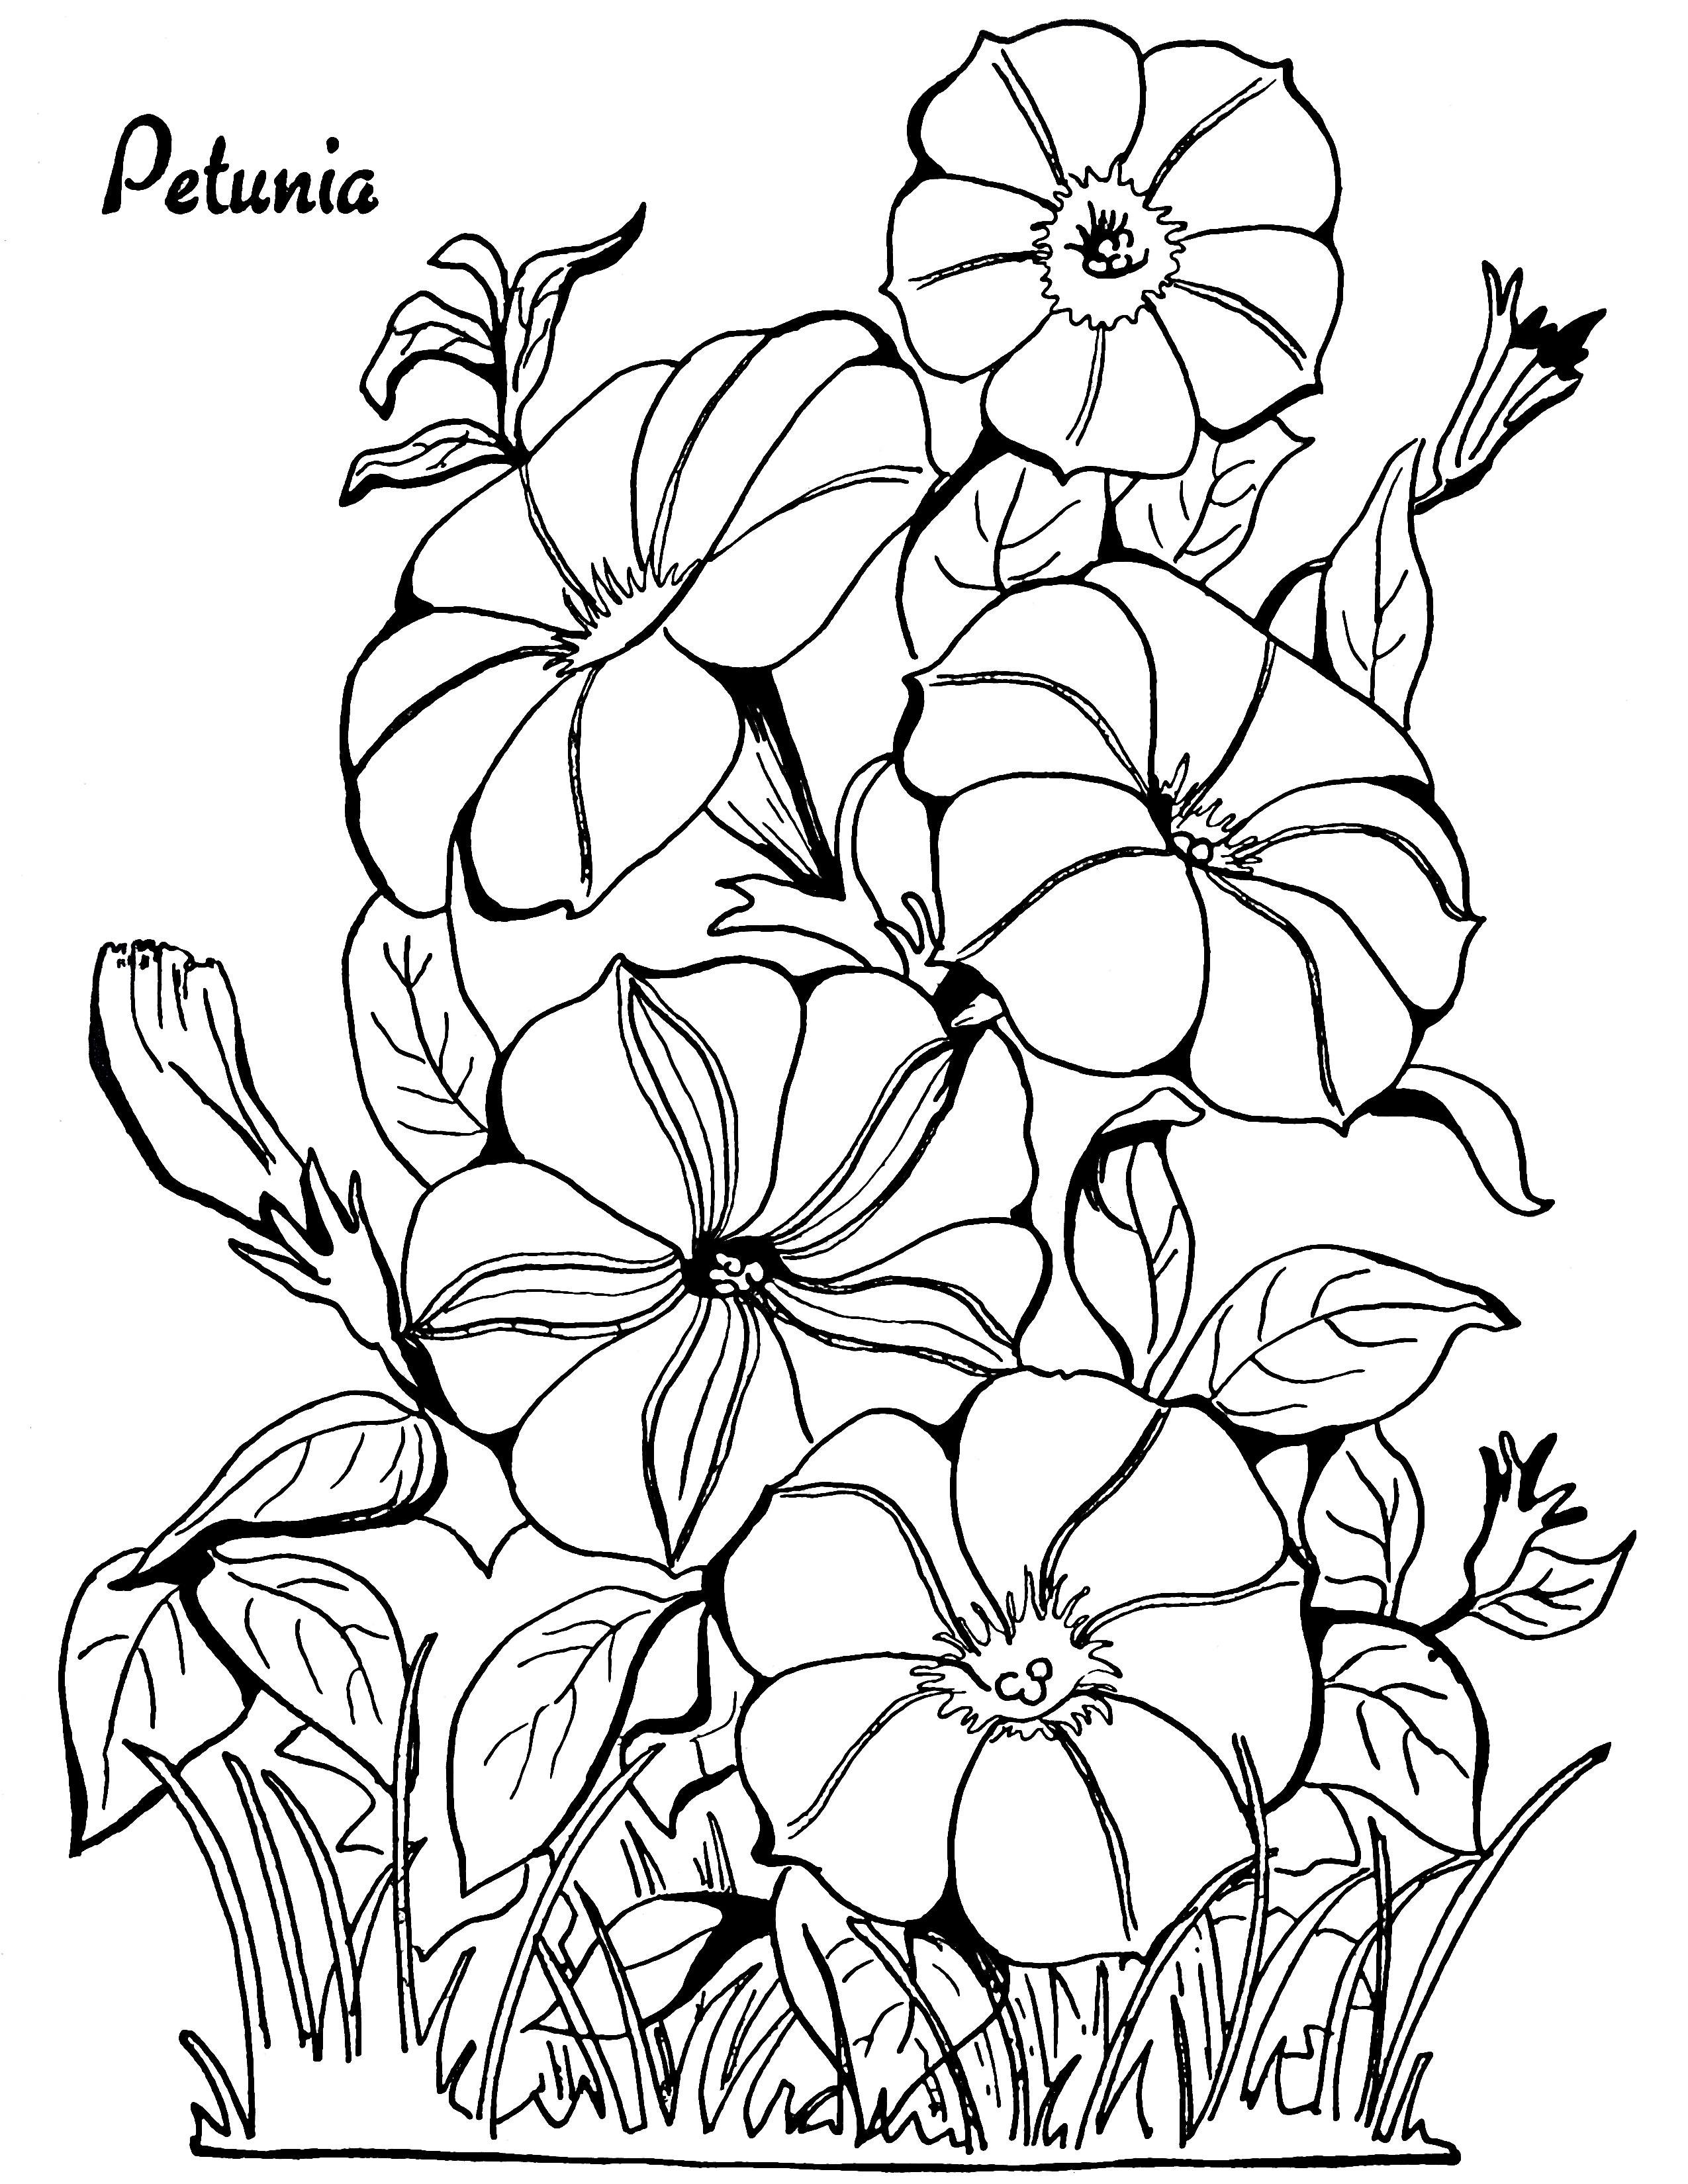 free flower coloring pages for adults free printable floral coloring page ausdruckbare adults for free coloring flower pages